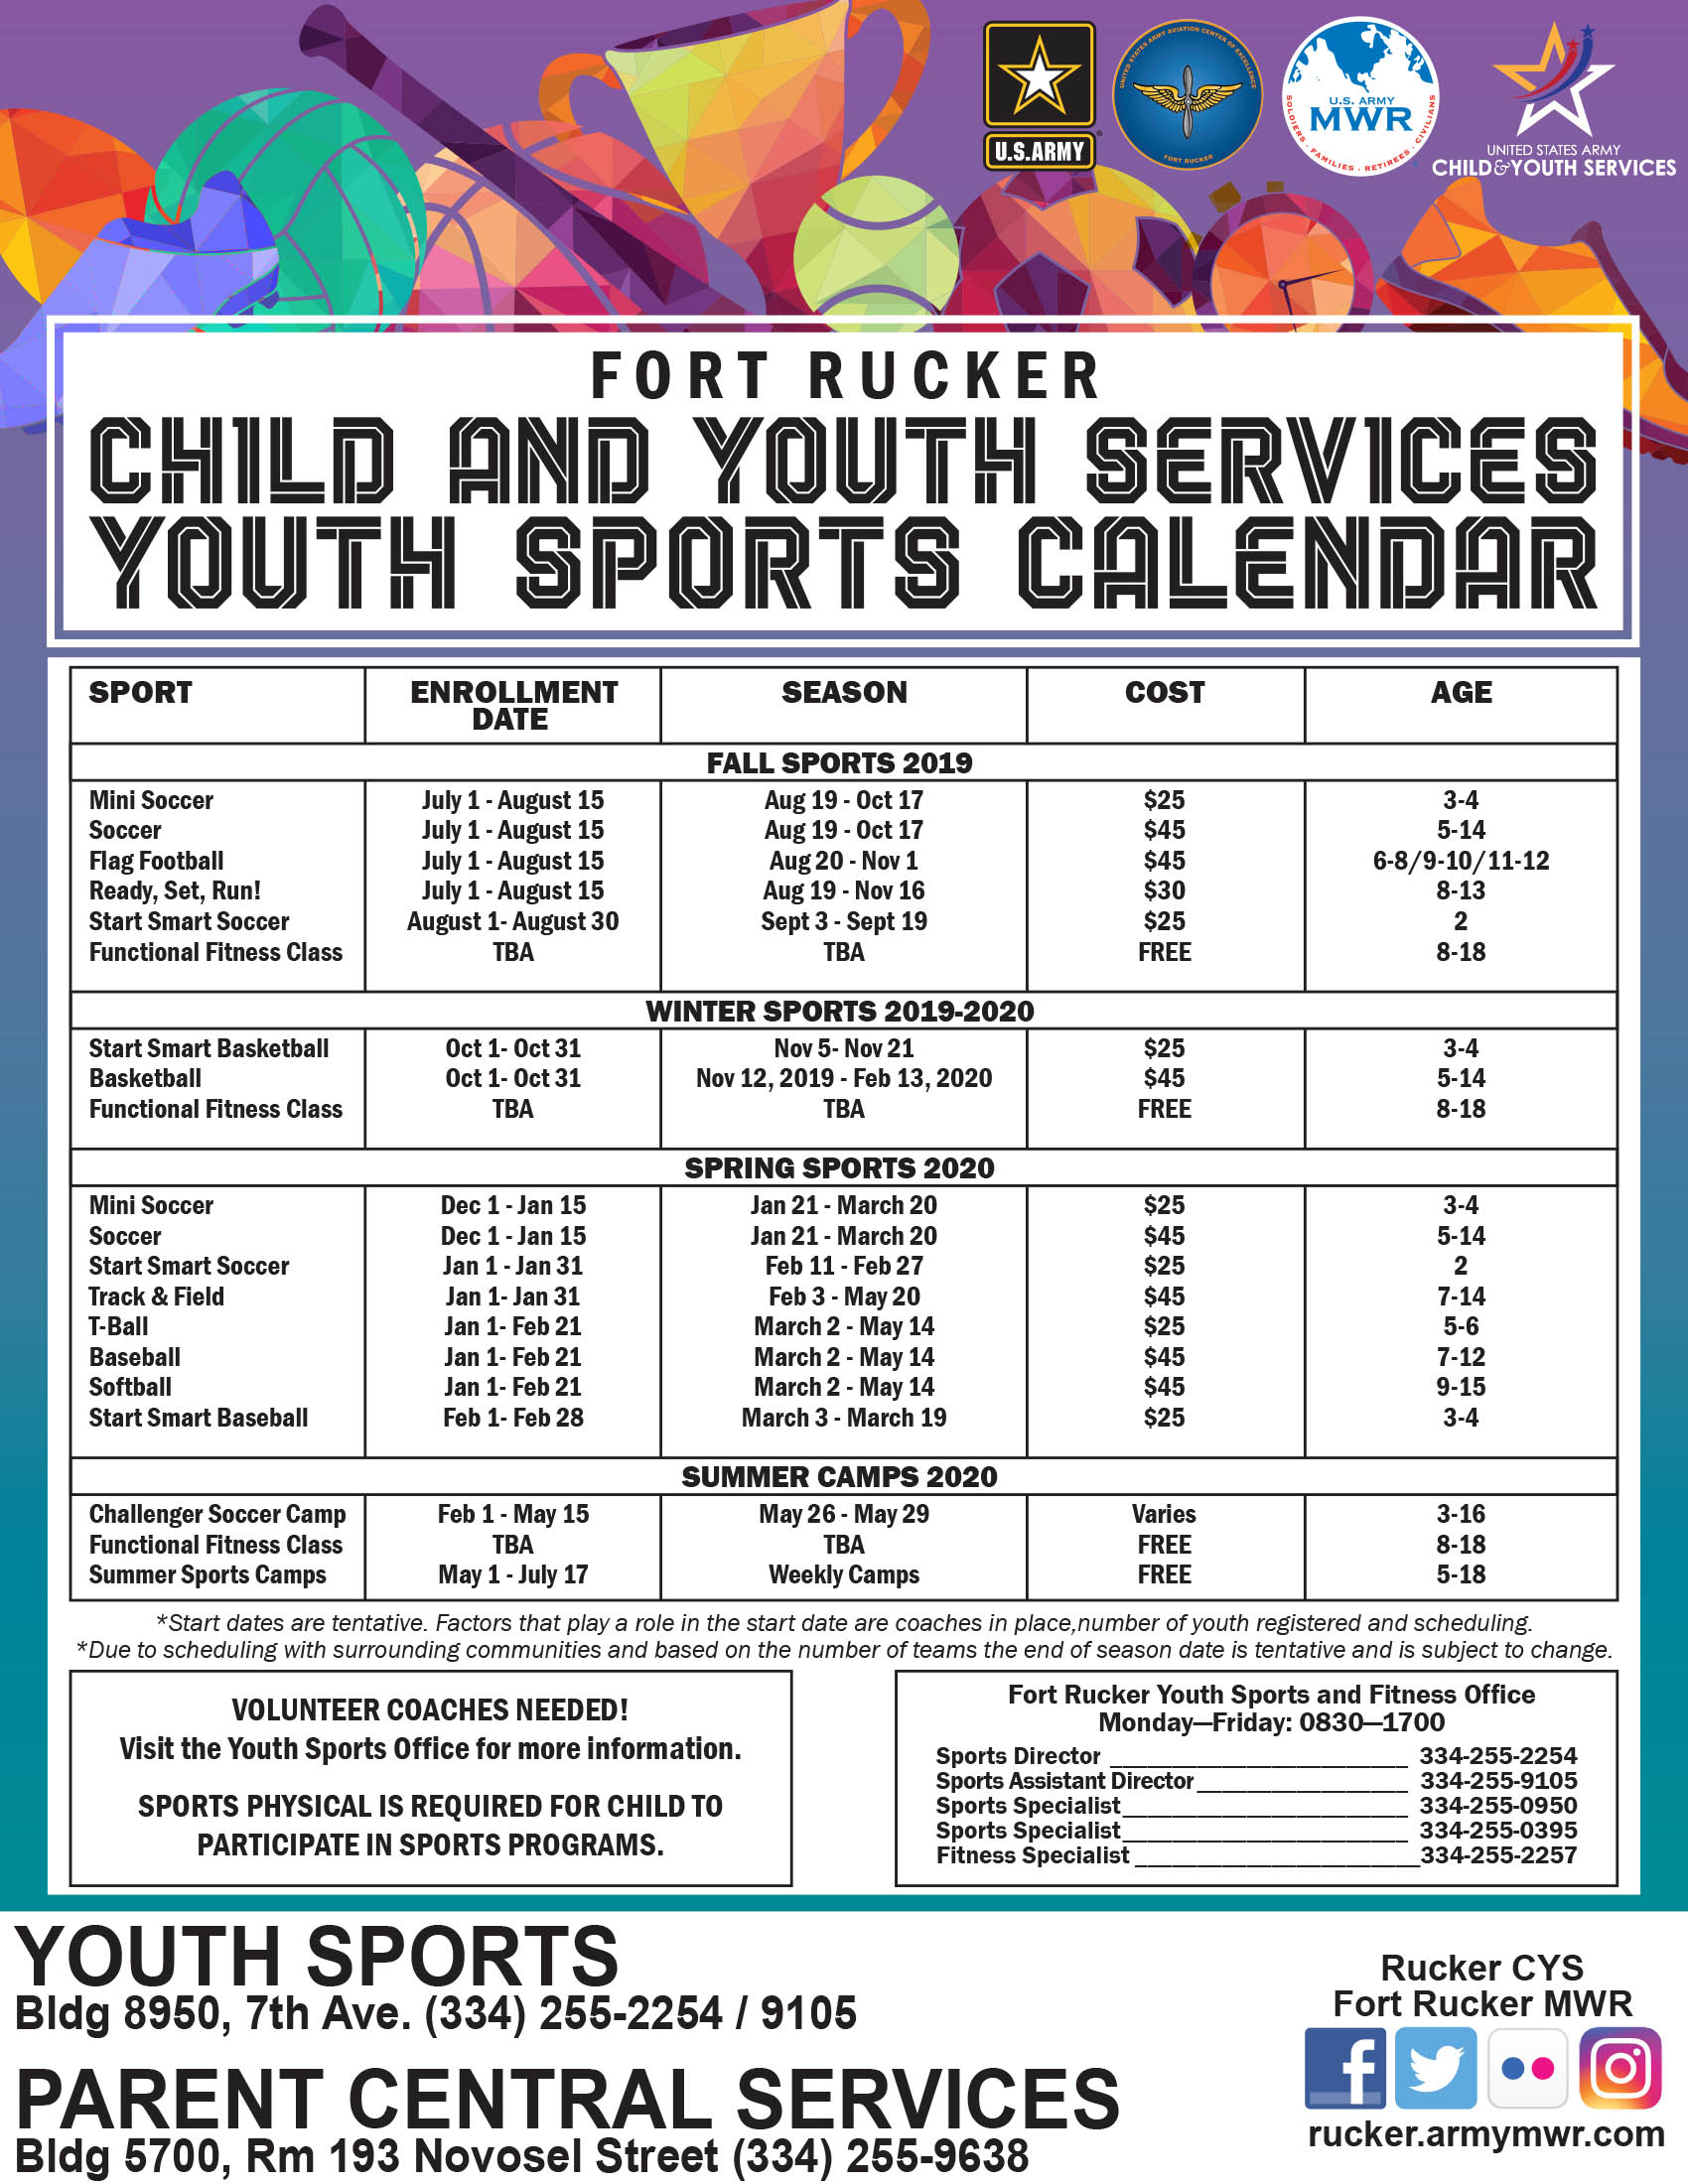 Rucker CYS YS Sports Calendar 2019.jpg